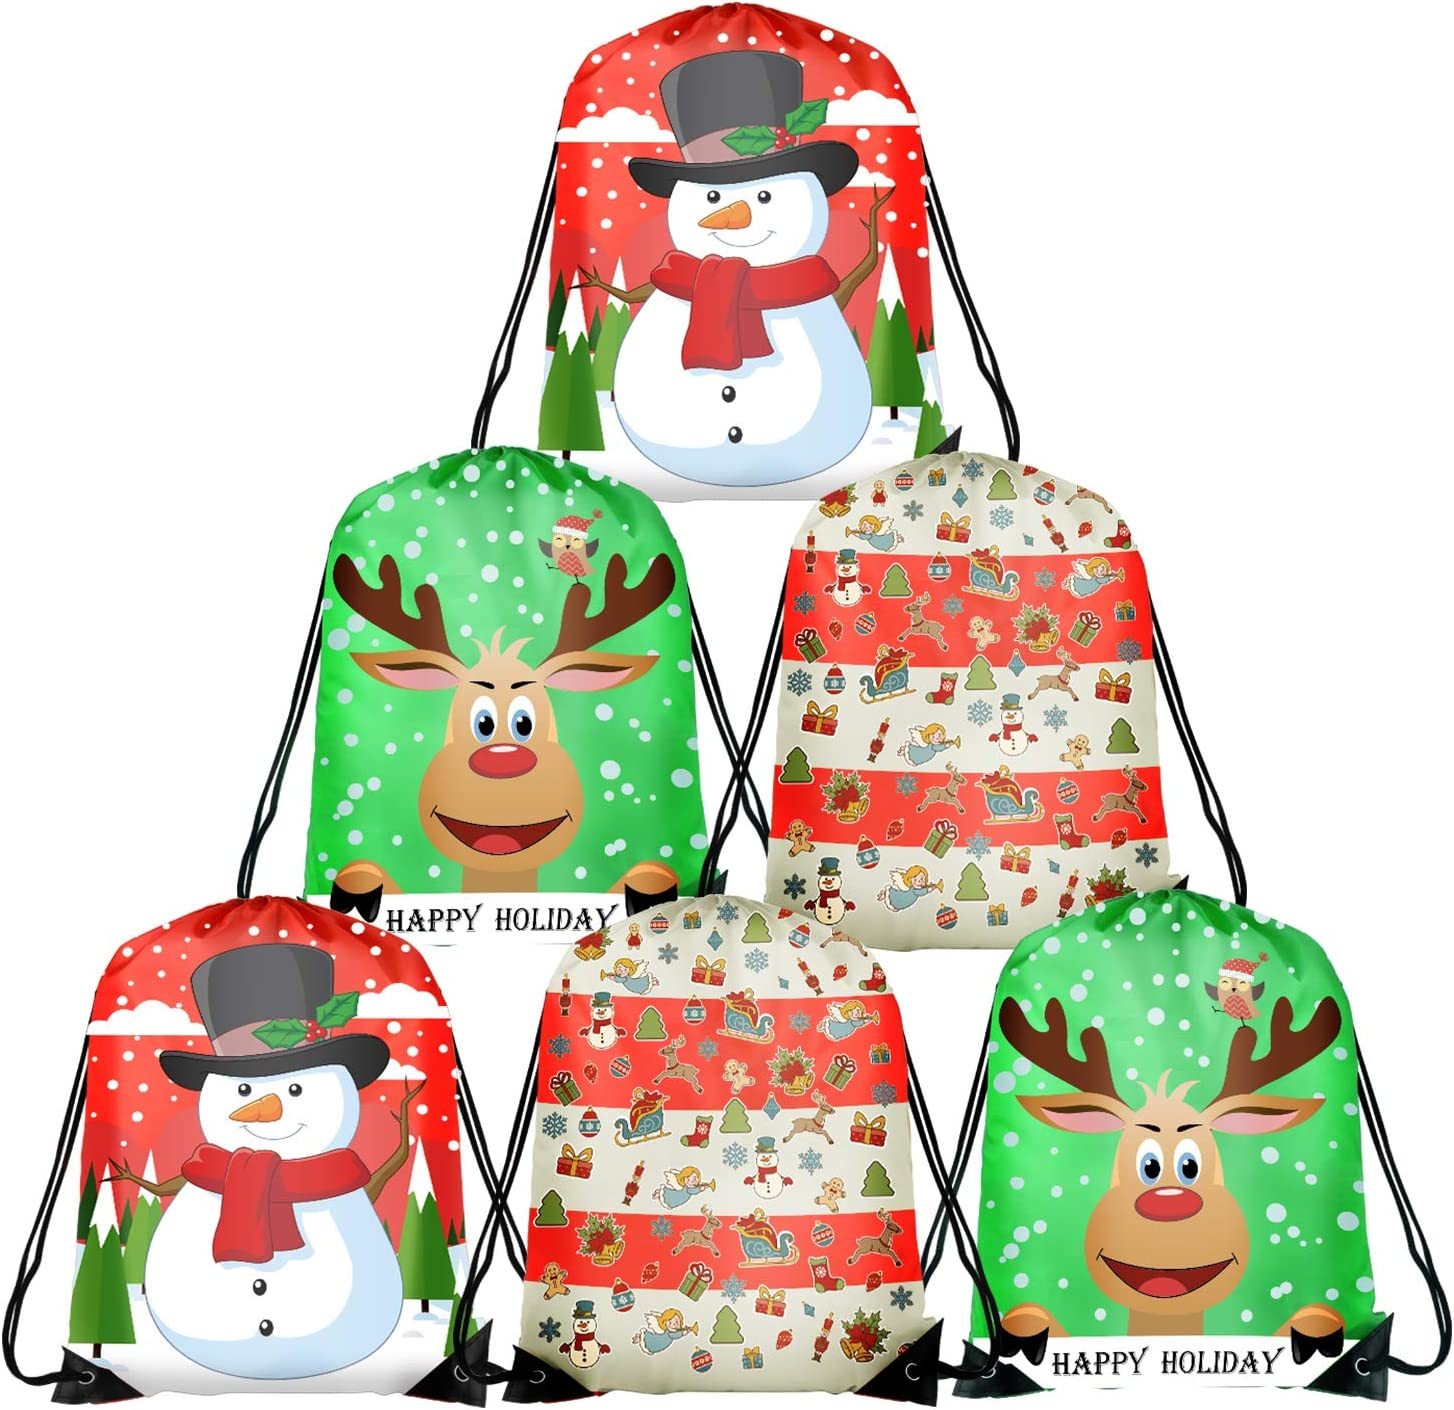 TUPARKA Christmas Drawstring Bags Santa String Backpack Cinch Sack Holiday Gift Bags for Christmas Party Favors  Christmas 6 Pack